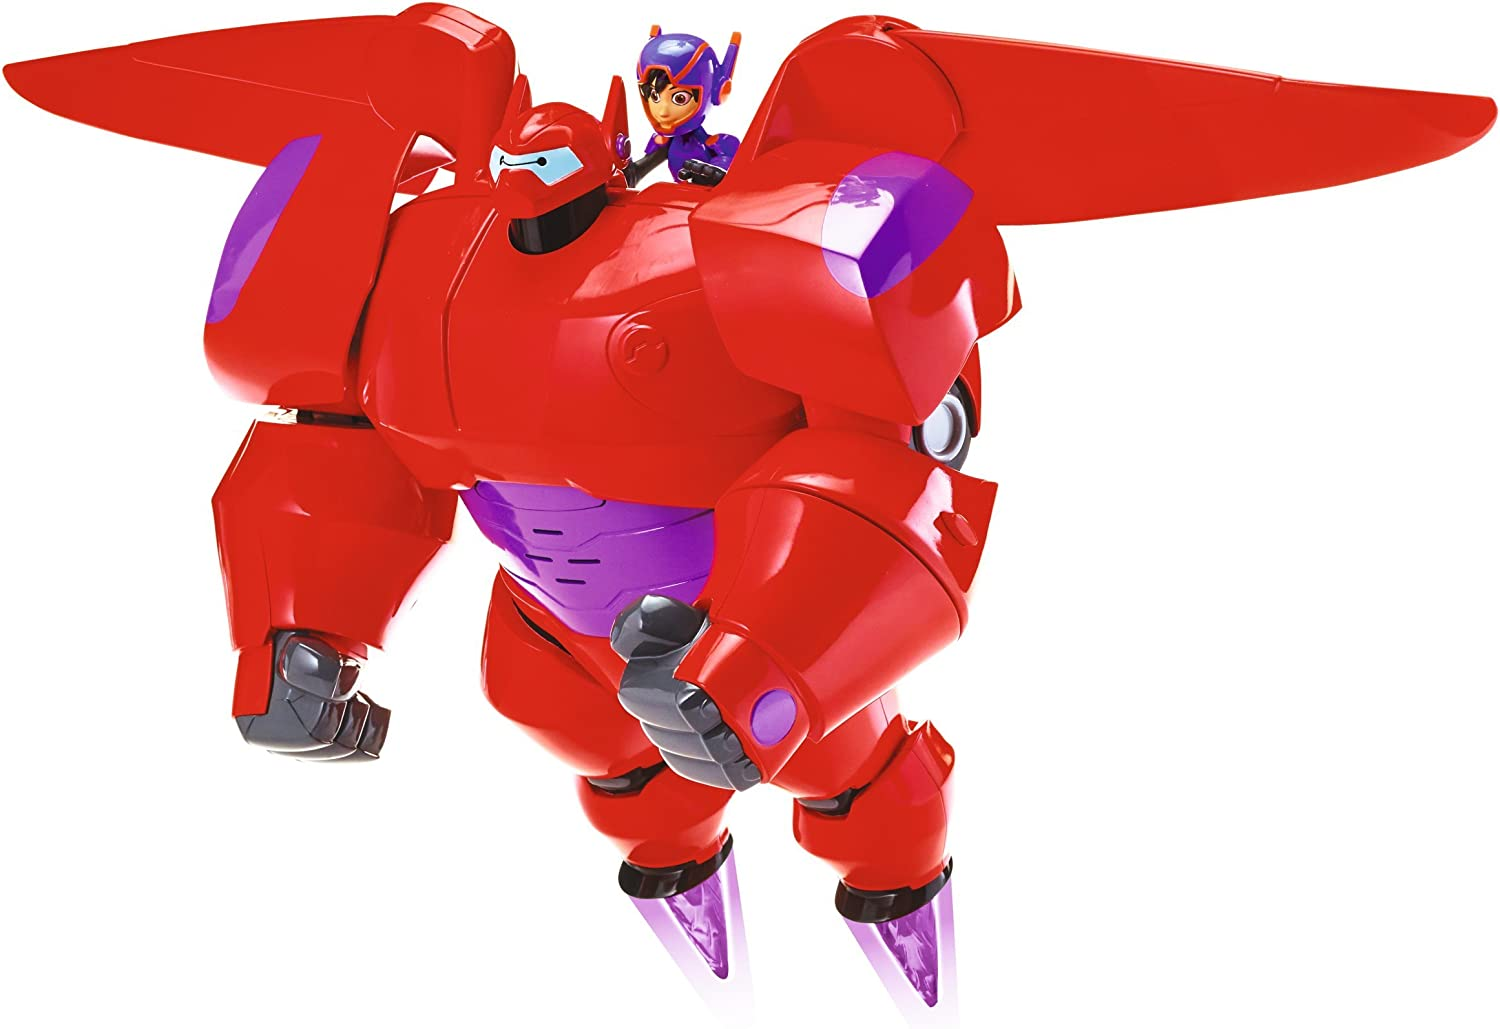 Amazon Com Big Hero 6 The Series Flame Blast Flying Baymax Kids Toy Action Figure Baymax Toy Fist Rocket Fires Toys Games